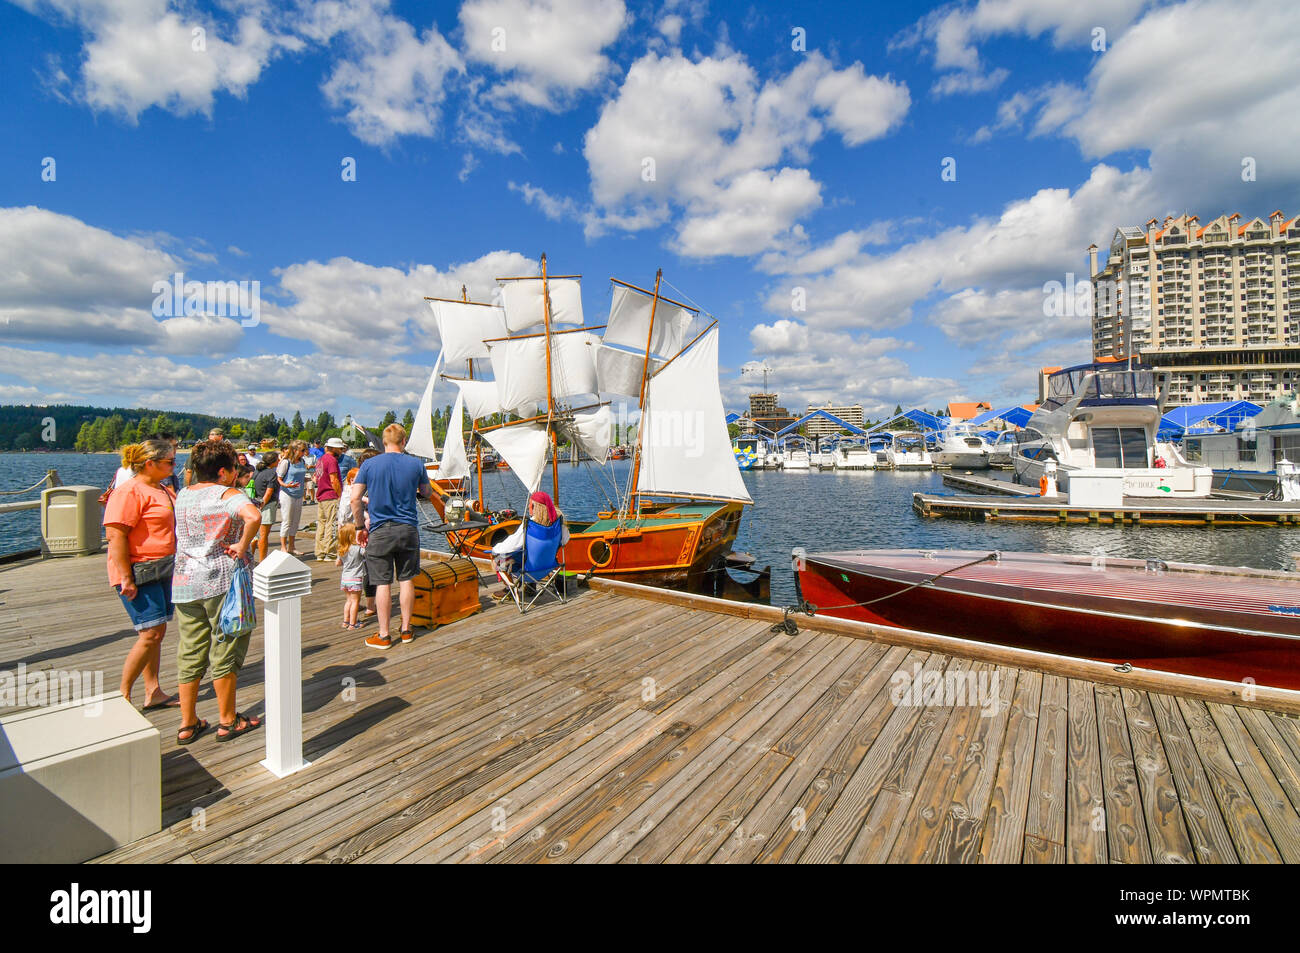 Visitors to the Coeur d'Alene Wooden Boat show talk with a boat owner dressed as a pirate about his miniature replica ship docked at the marina Stock Photo